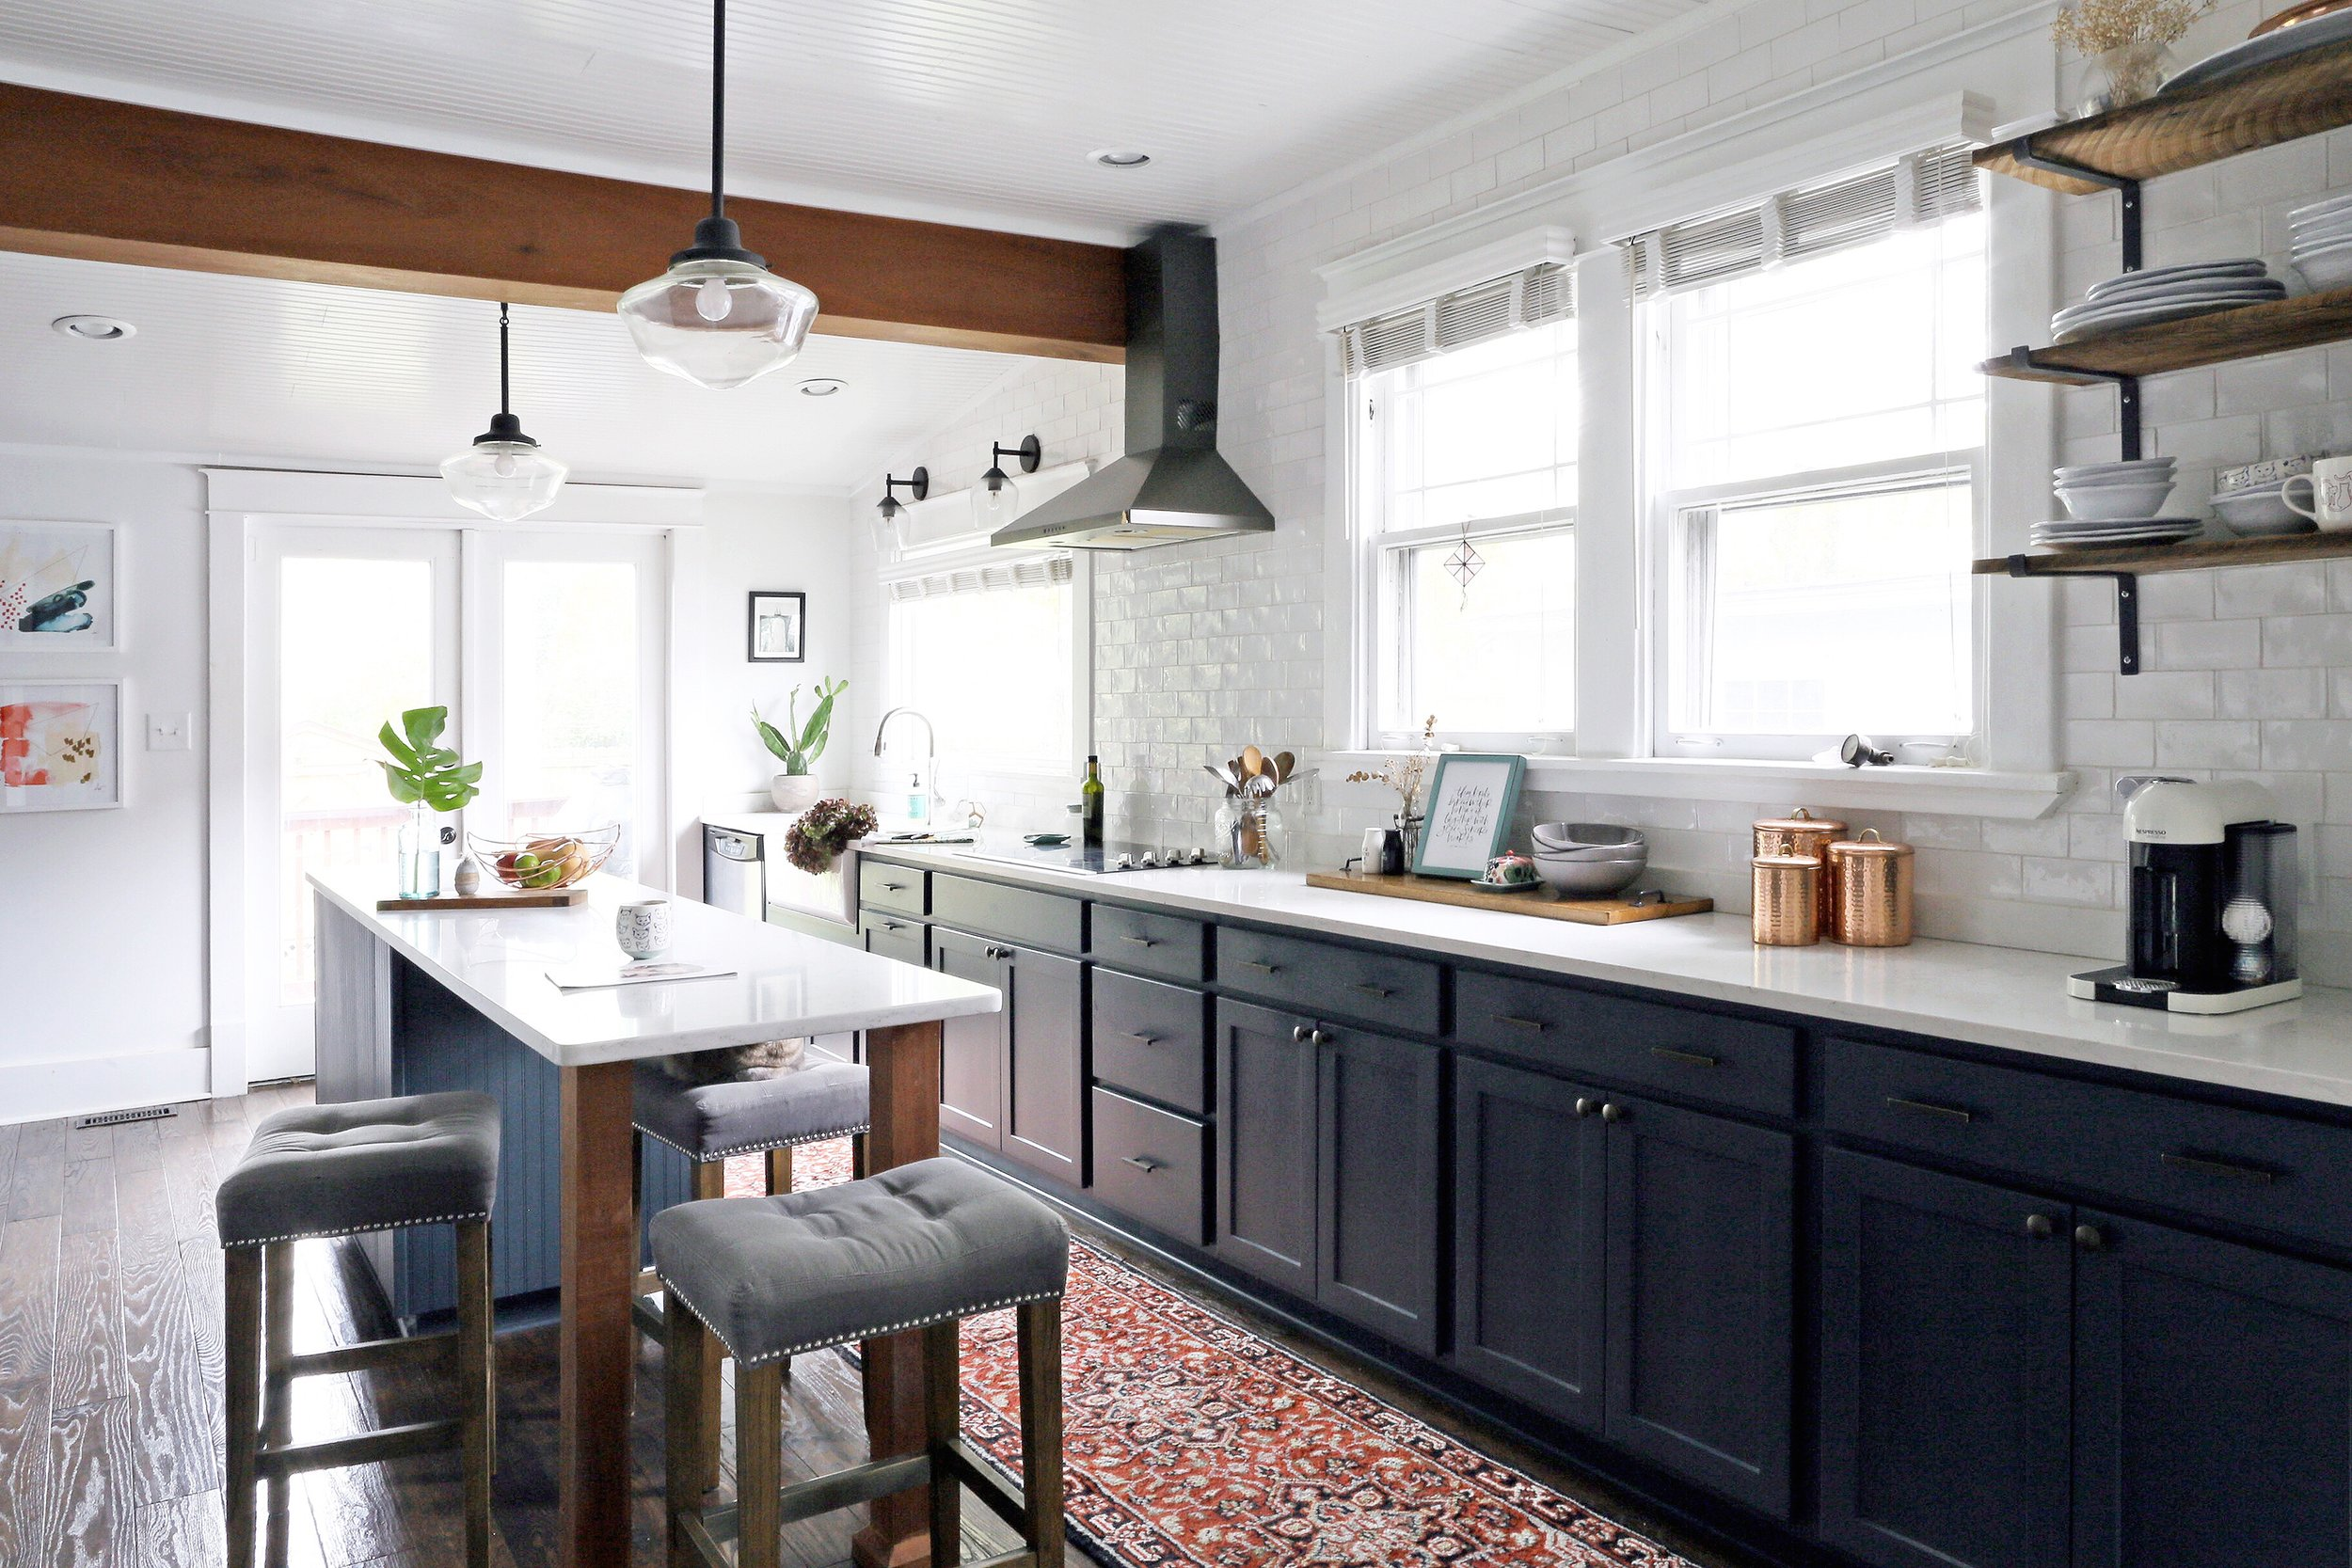 A MODERN BUNGALOW KITCHEN REVEAL IN EAST NASHVILLE | Design by Life of Plenty Home